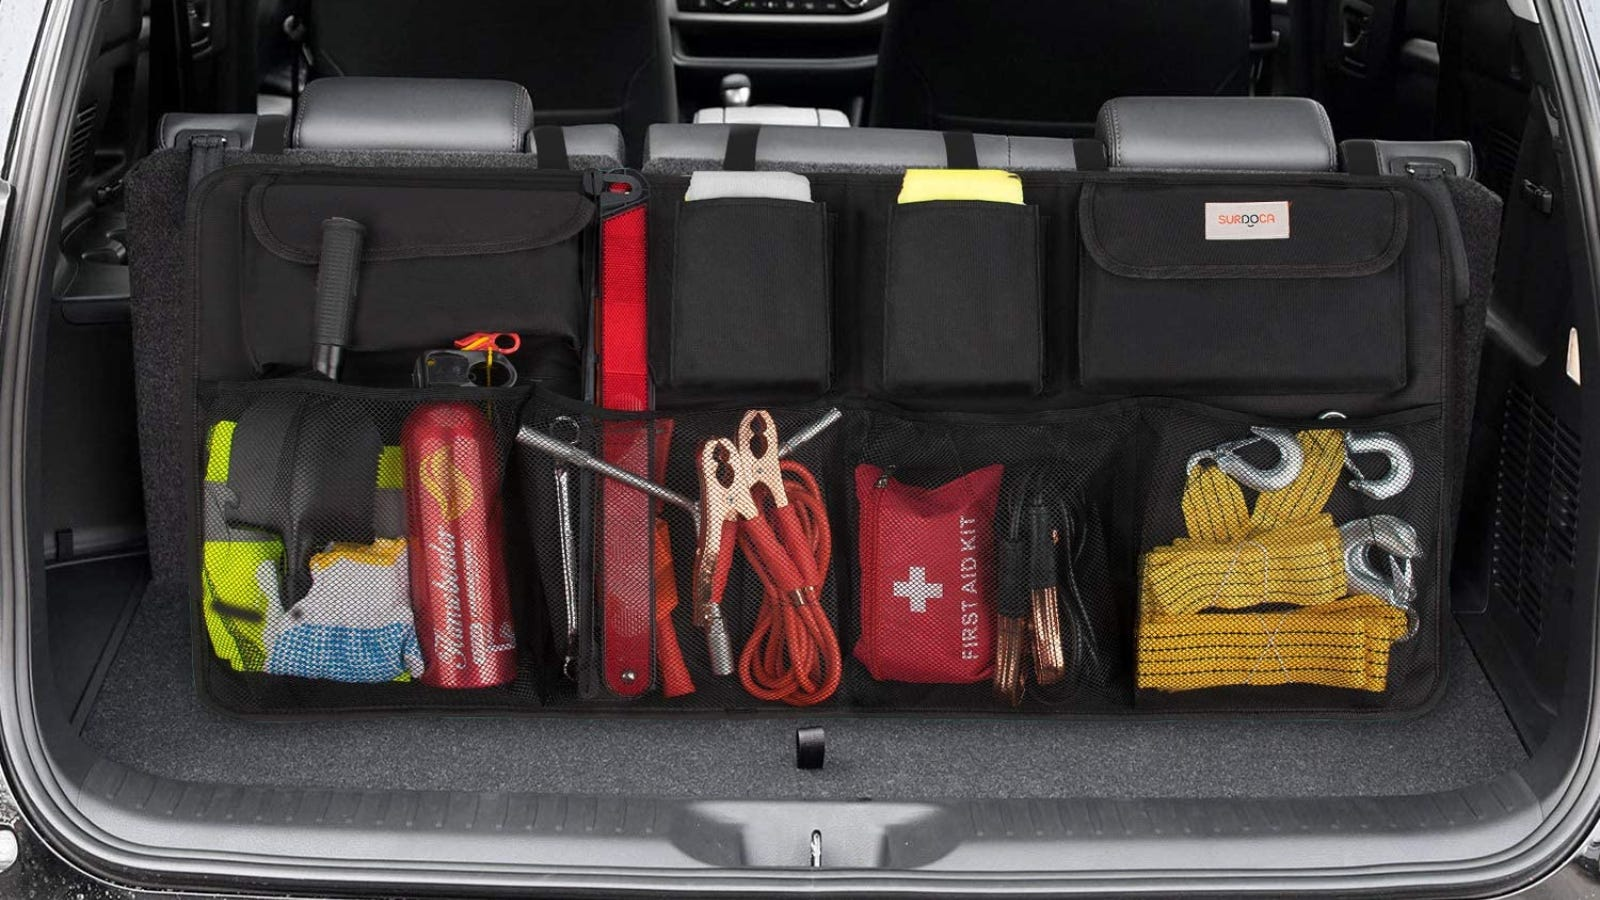 A hanging trunk storage organizer with pockets full of emergency supplies and tools.